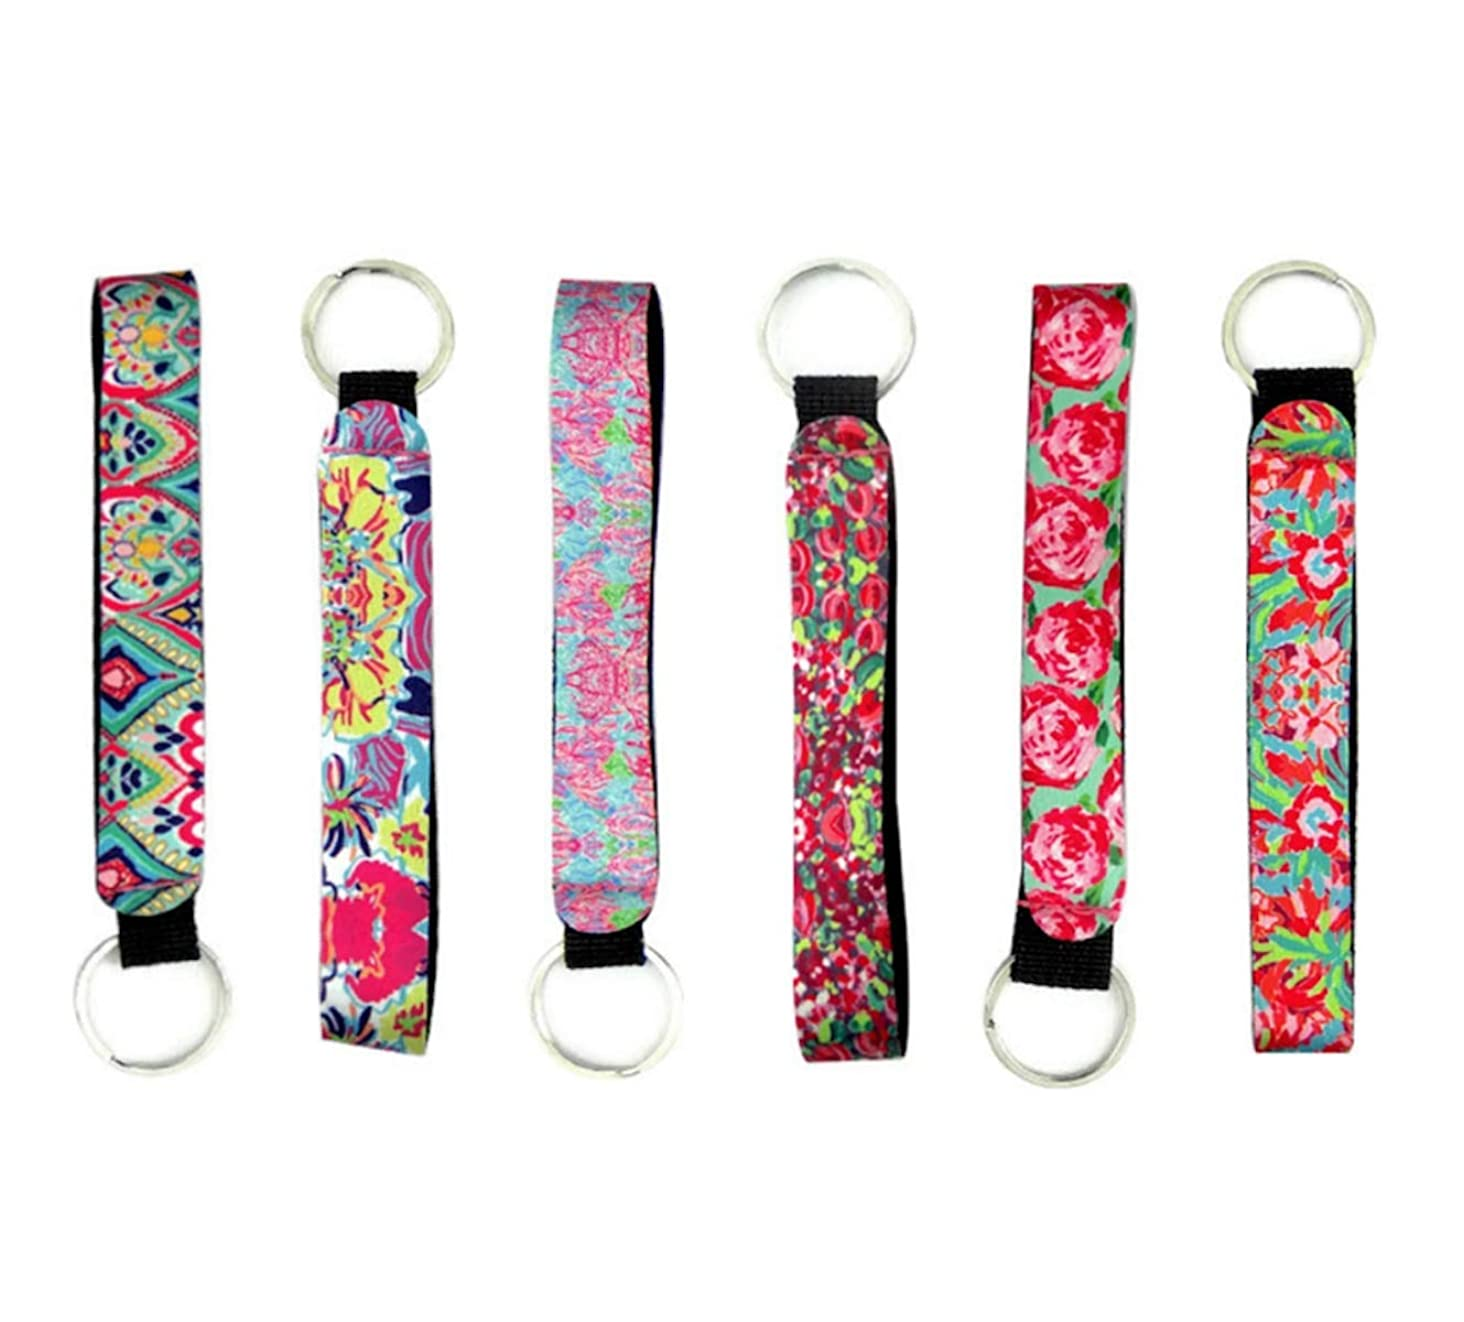 Cool Neoprene Wristlet Keychain Lanyard 6 Pack - Neoprene Key Chain Holder to Match Chapstick Holder Keychain, 6 Unique Fun Colors